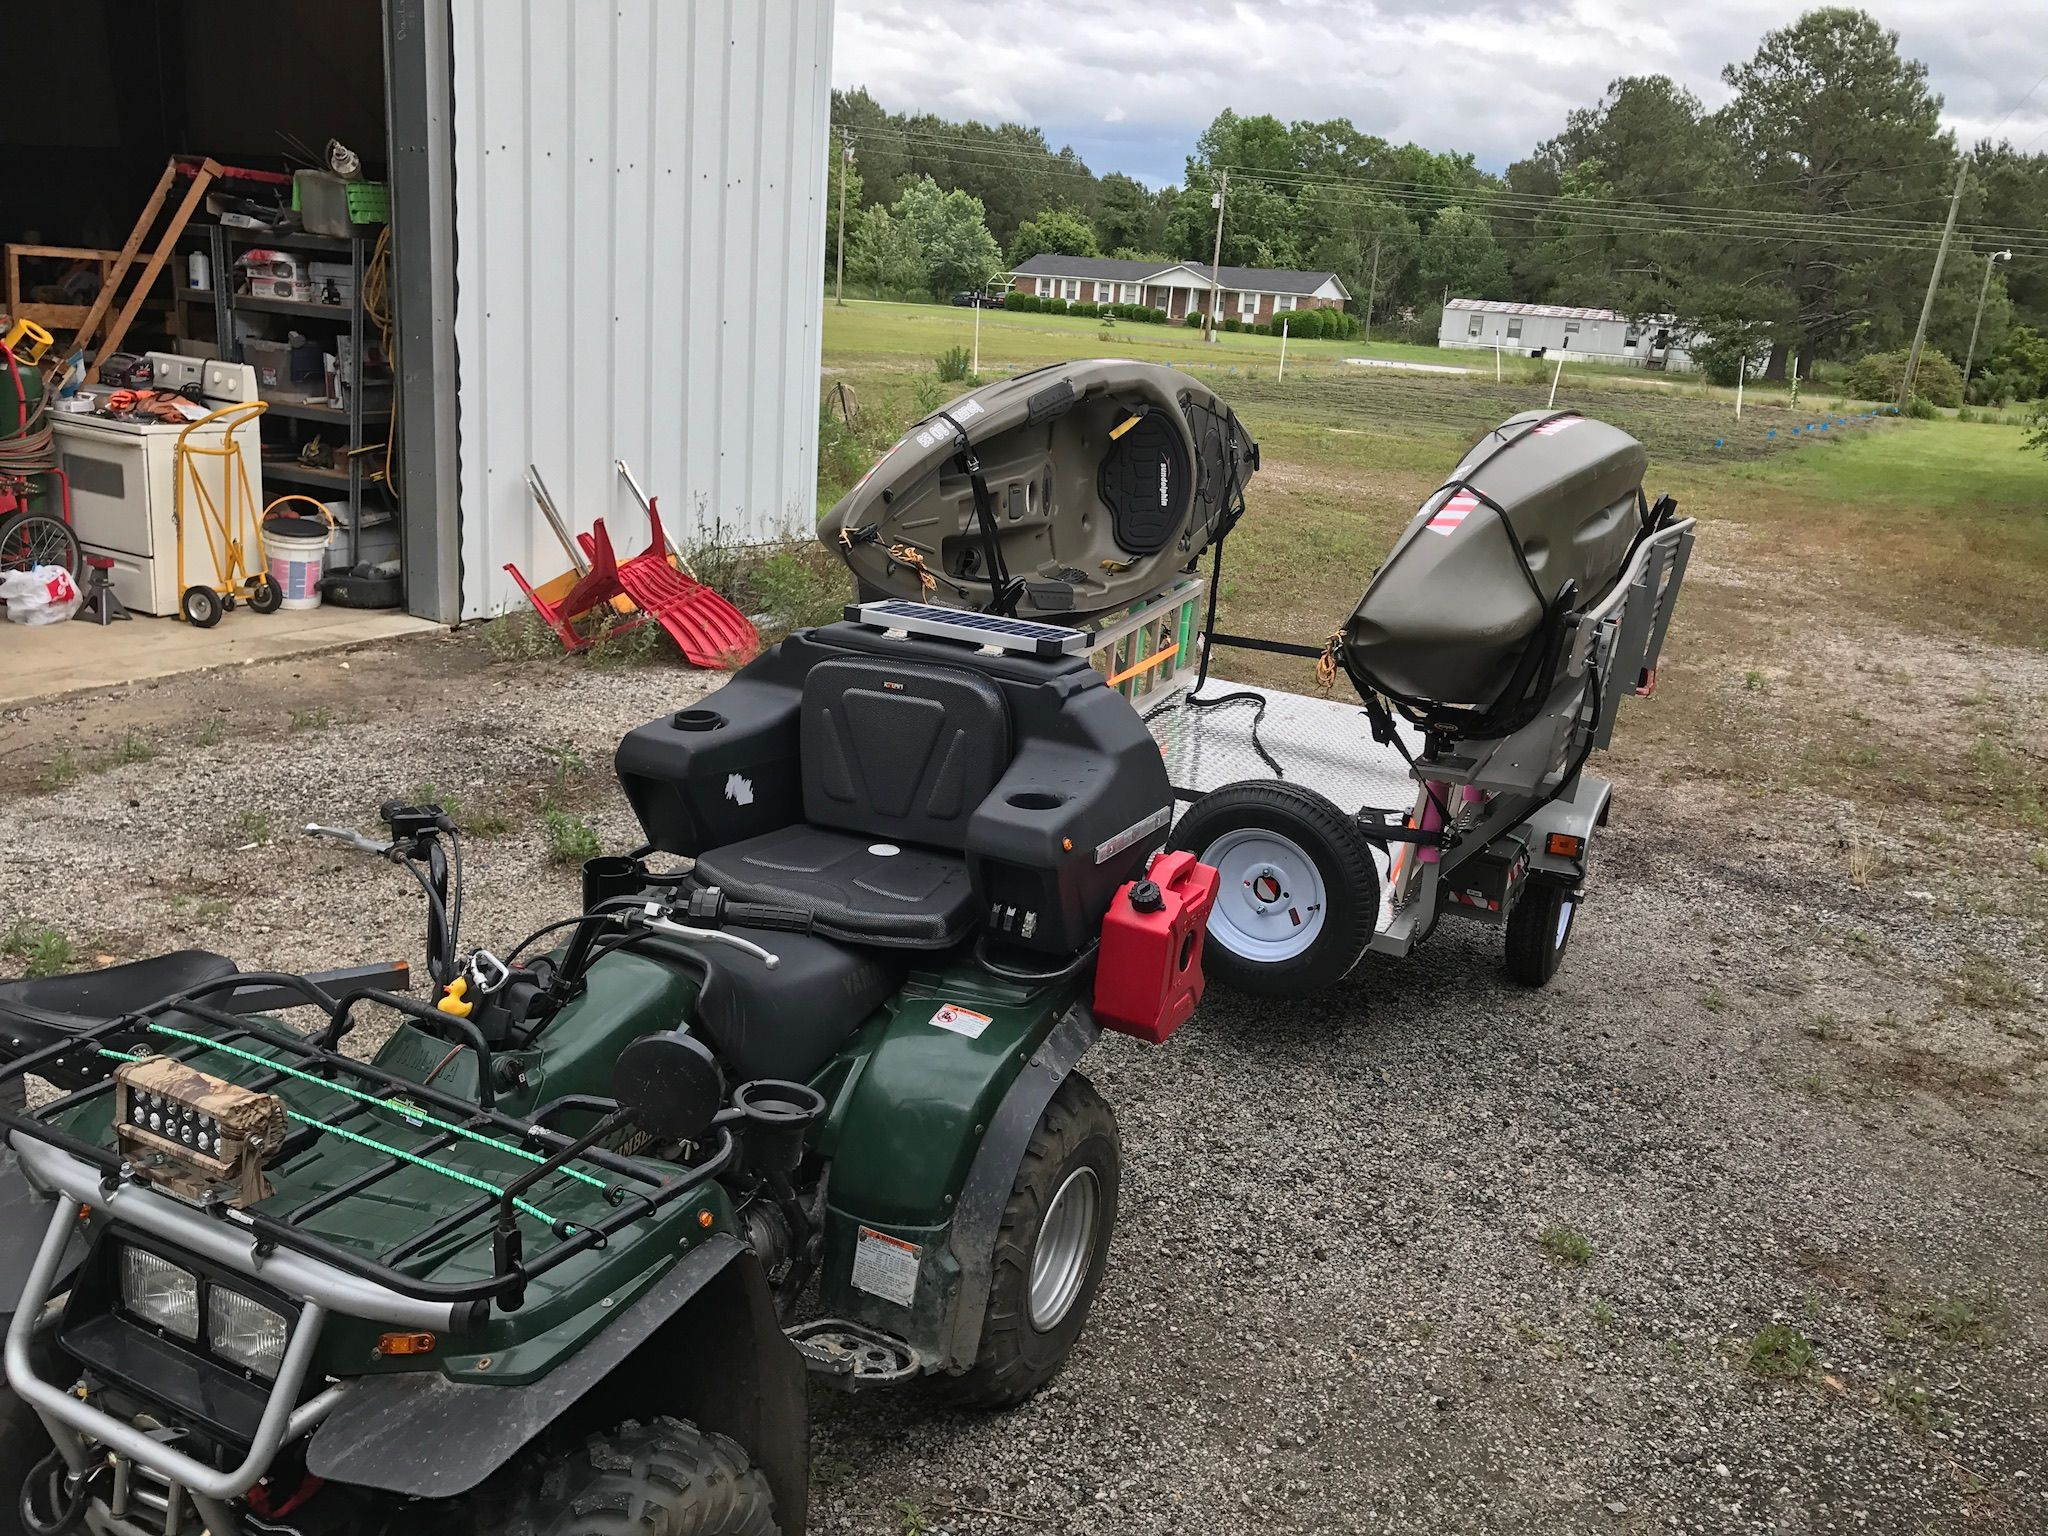 Atv Kayak And People Mover Trailer Home Built To Carry My Two